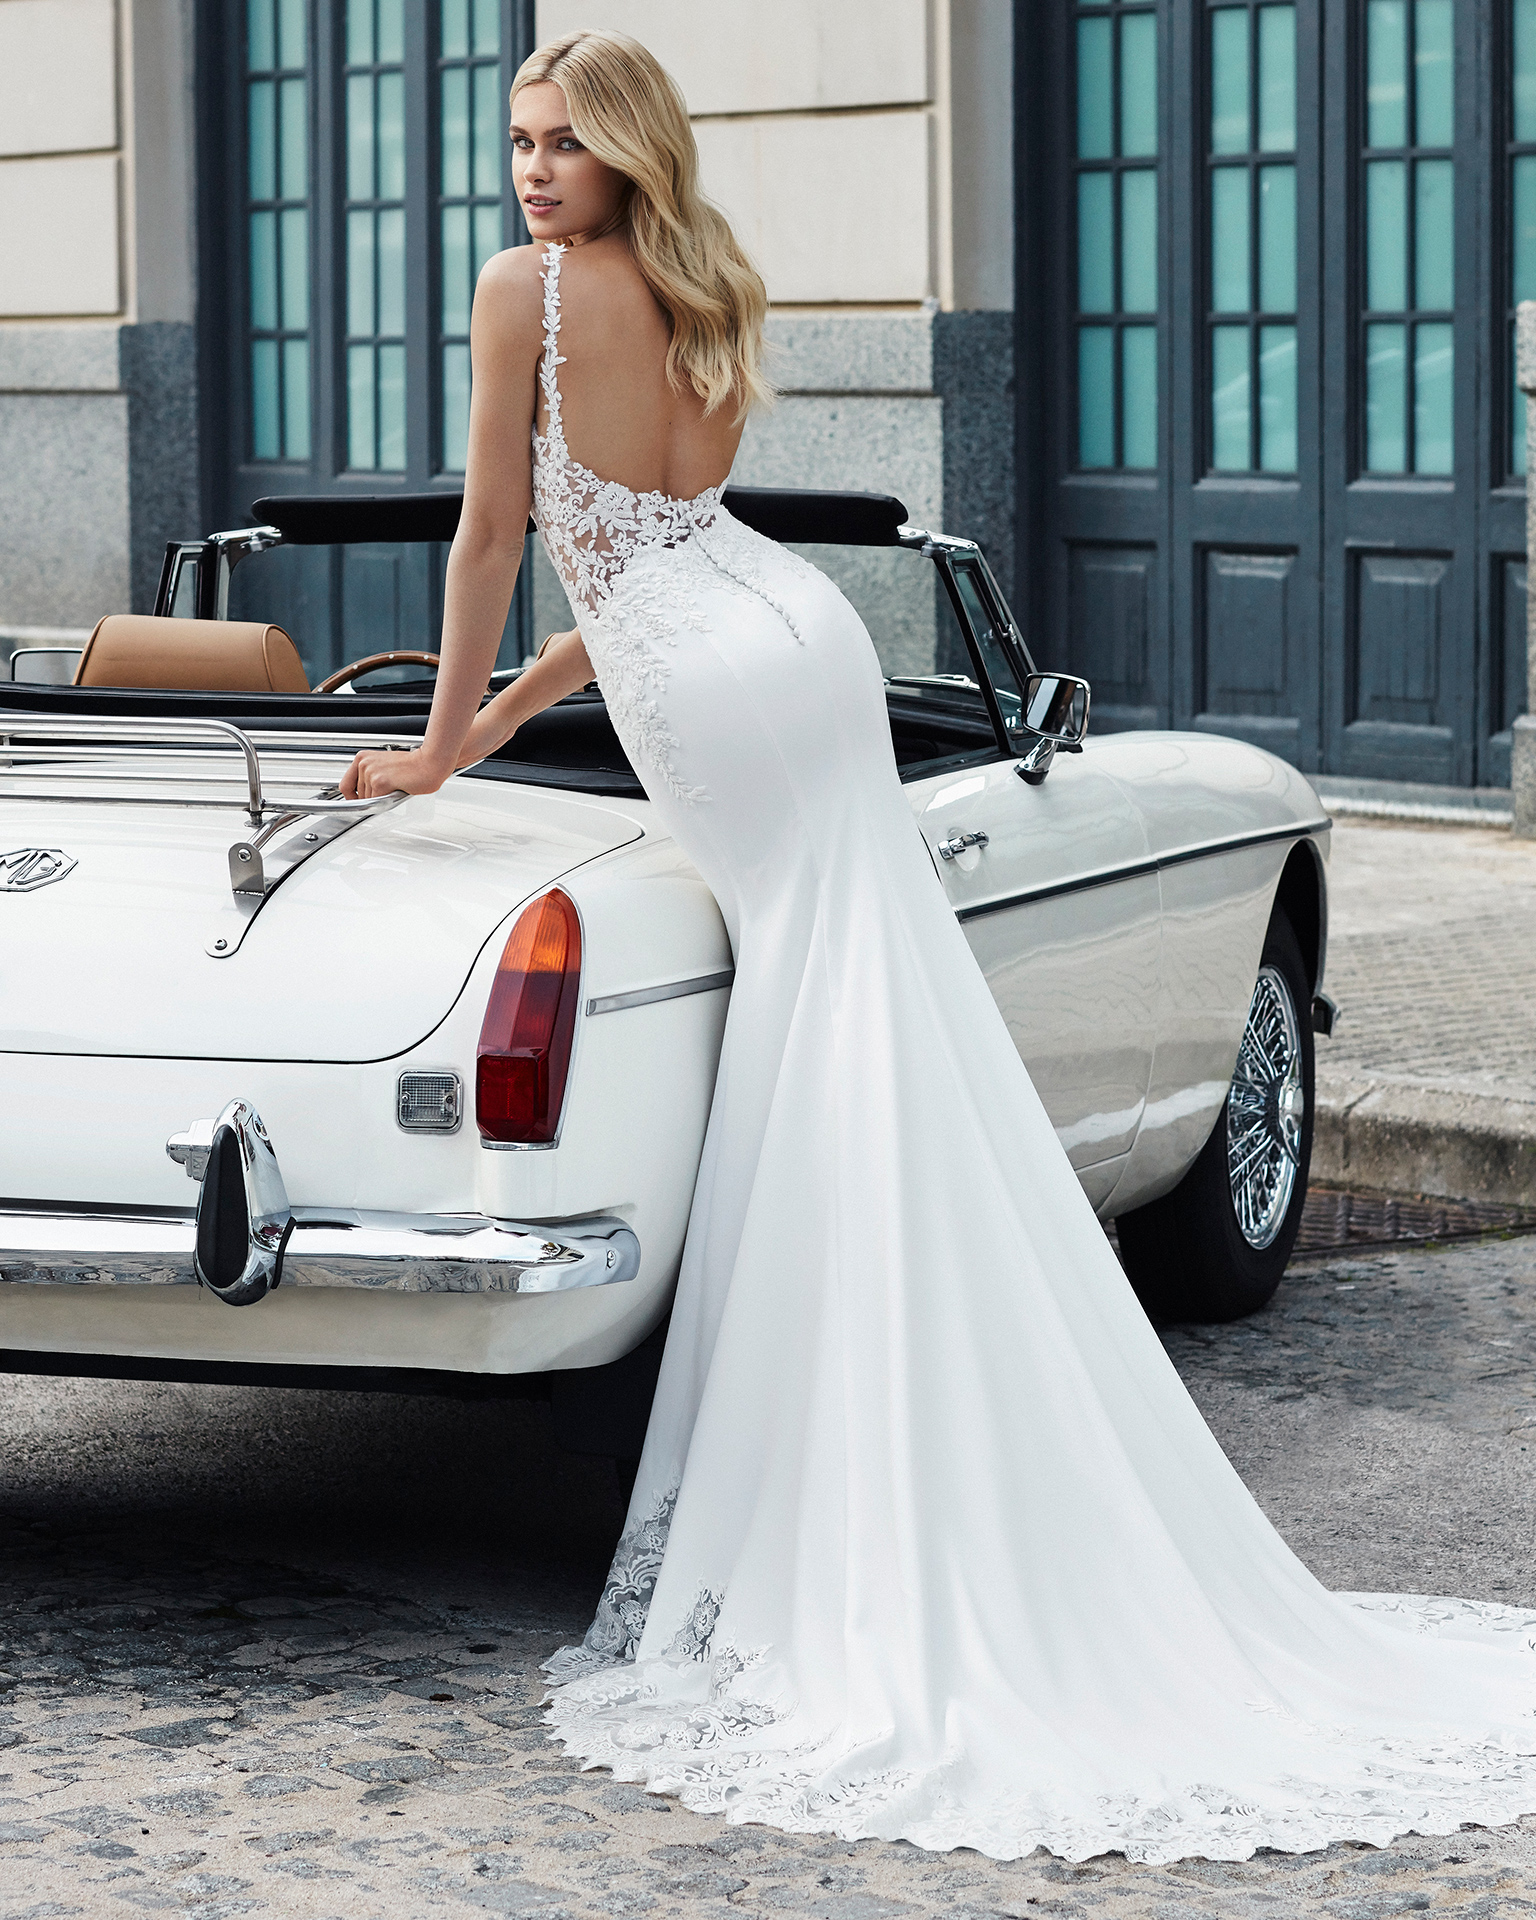 Sheath-style wedding dress in crepe. Sleeveless, V-neckline, beaded lace bodice and train edged with lace. Available in natural. 2019  Collection.